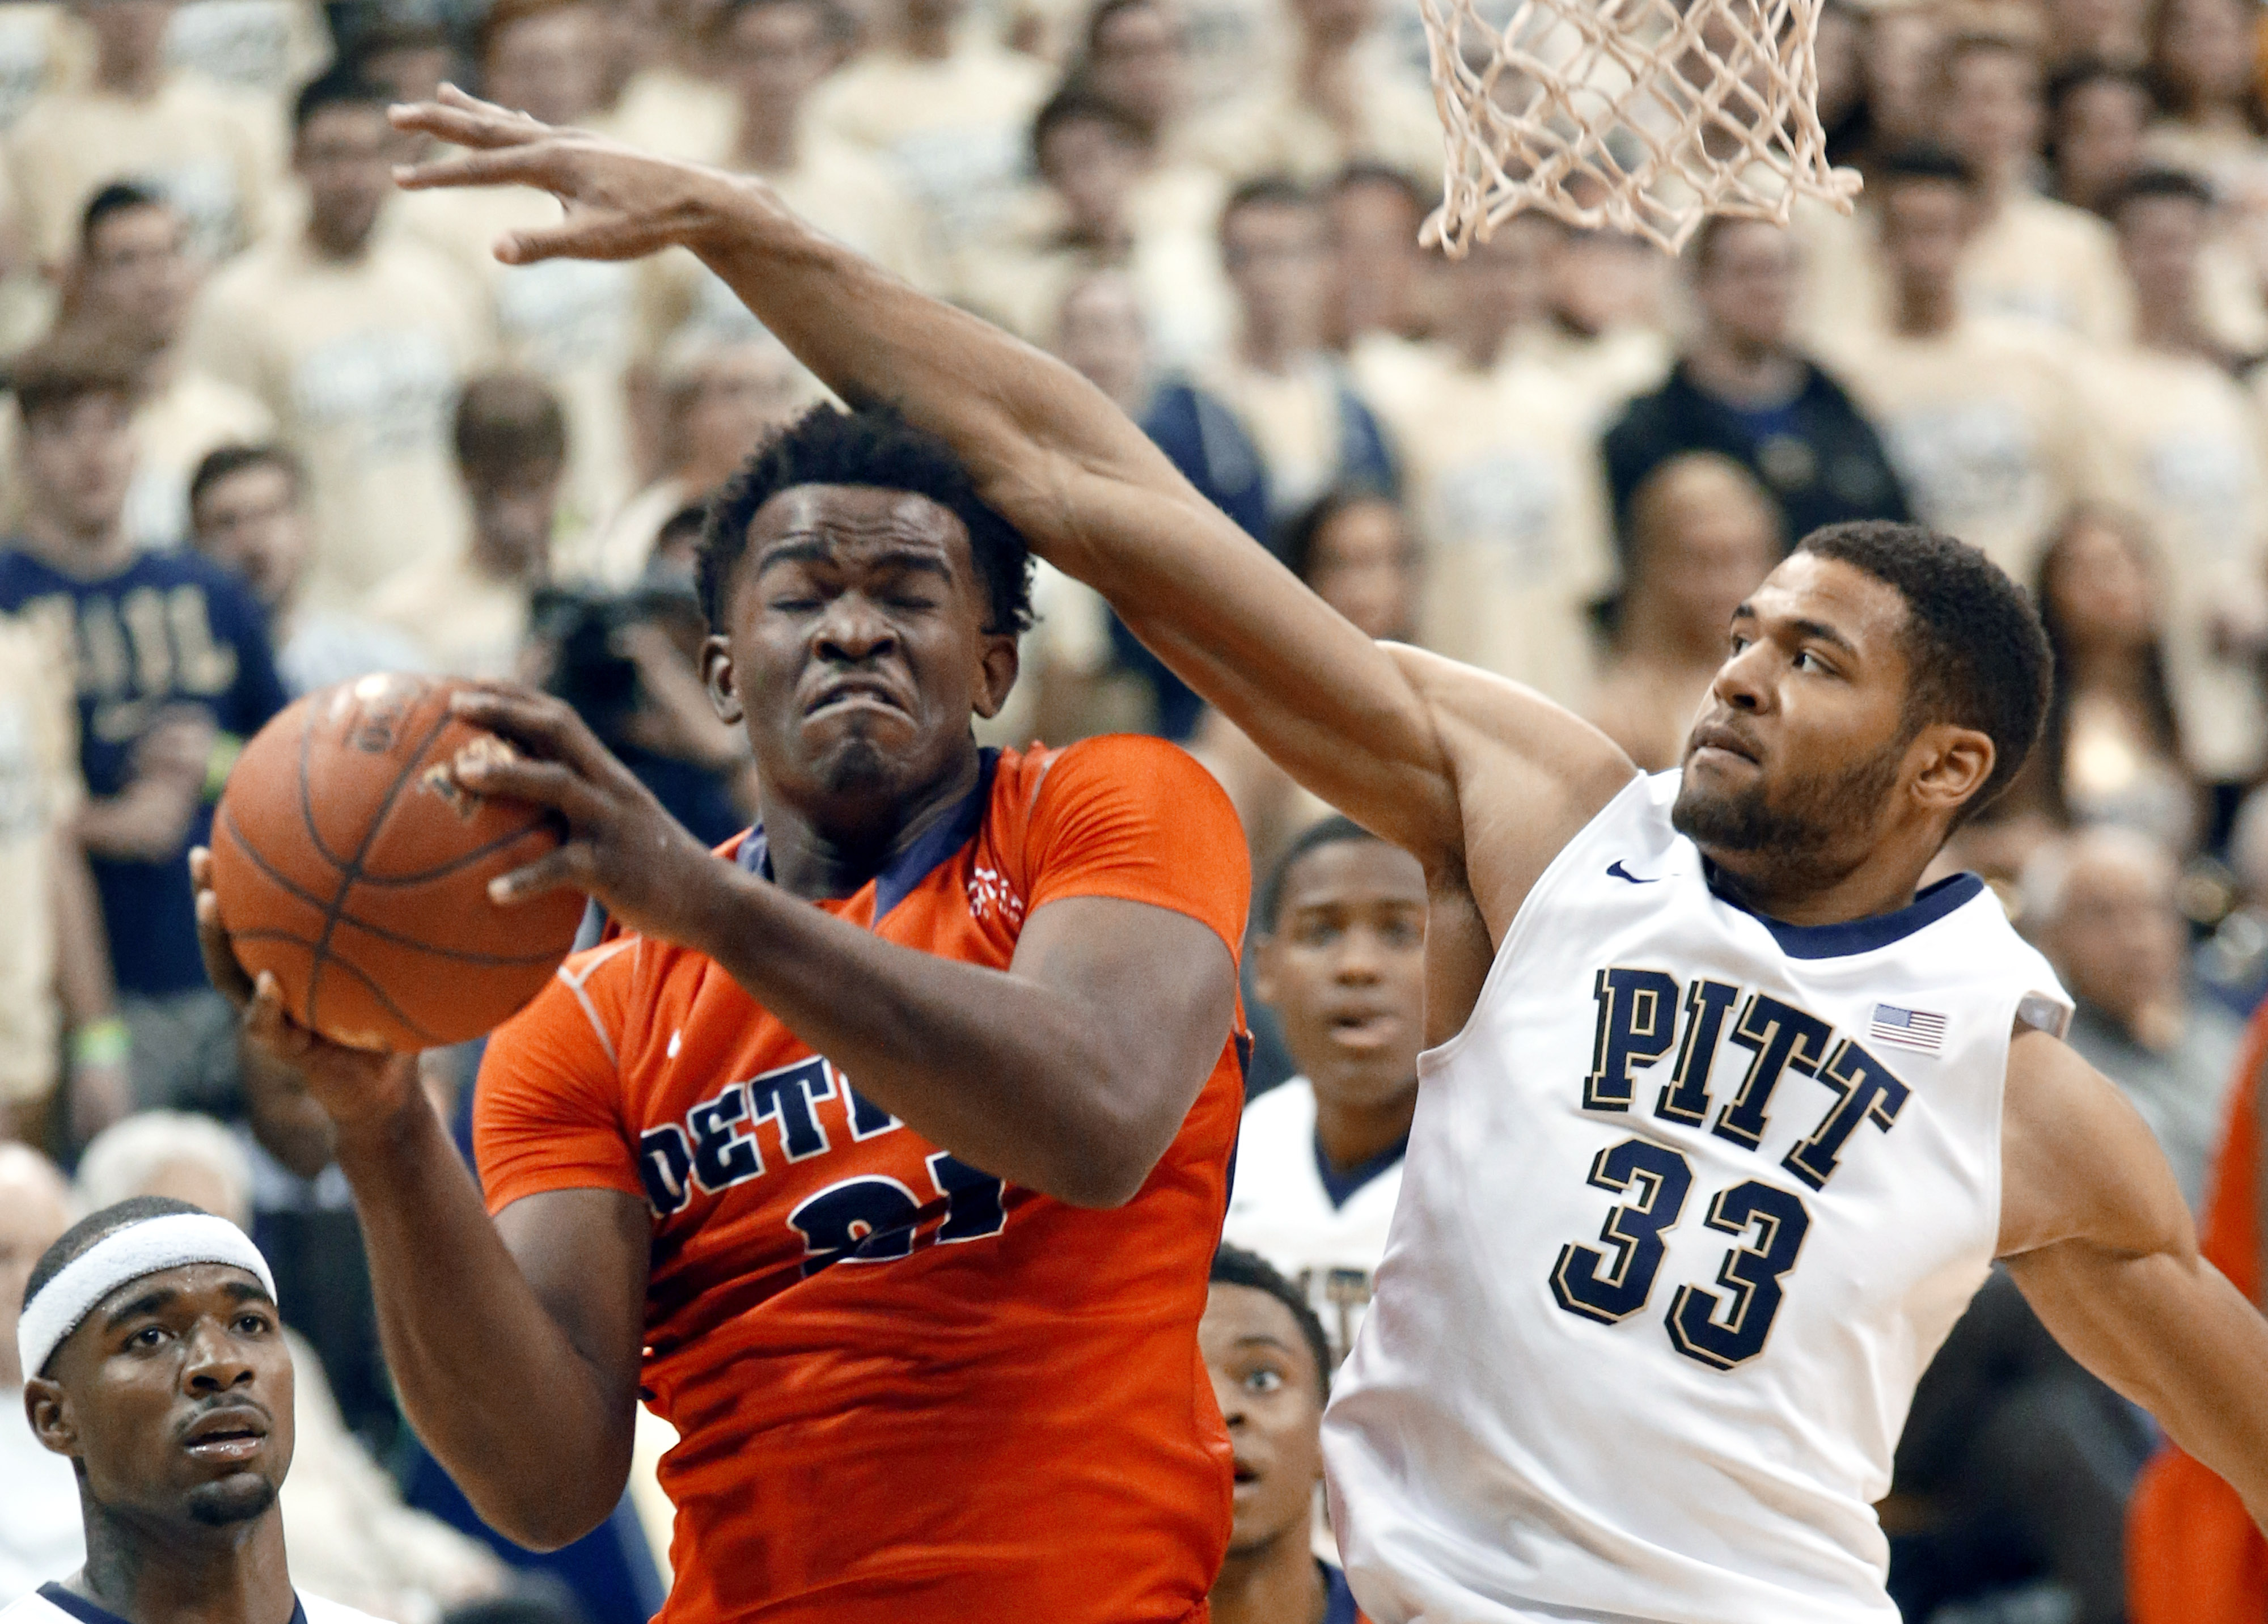 Detroit's Jaleel Hogan (21) is fouled by Pittsburgh's Alonzo Nelson-Ododa (33) during the second half of an NCAA college basketball game Friday, Nov. 20, 2015, in Pittsburgh. (AP Photo/Keith Srakocic)